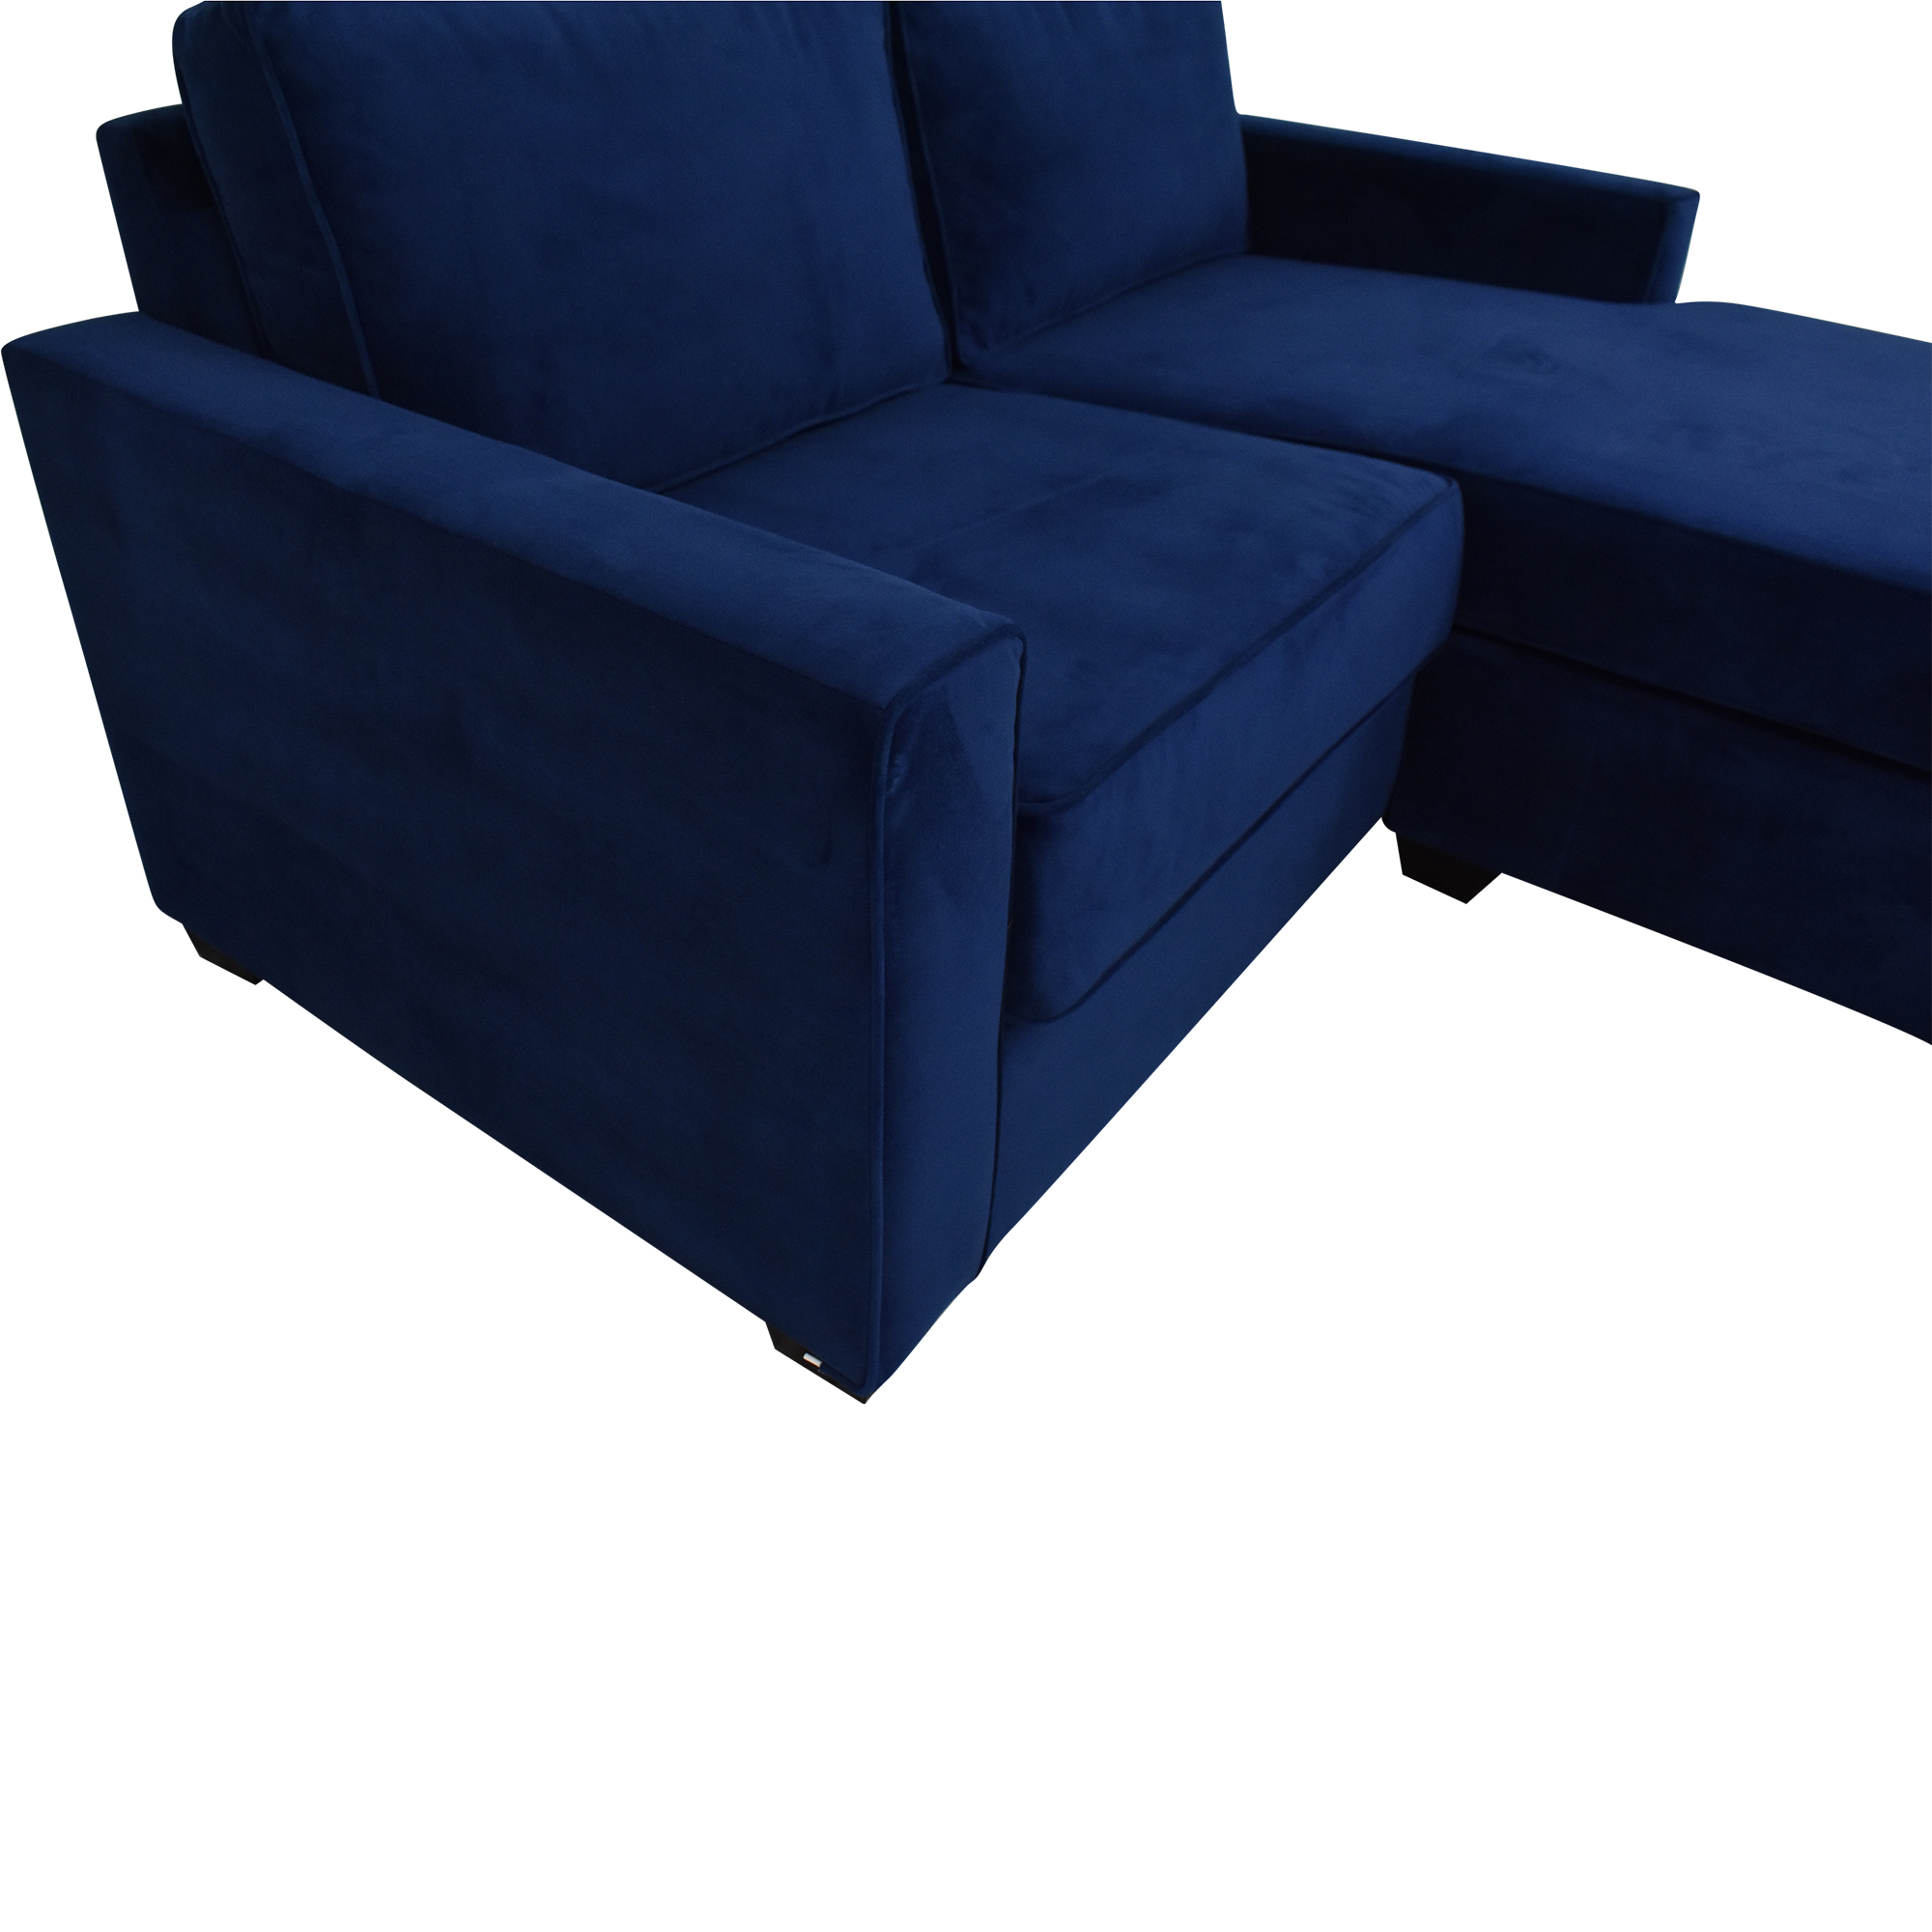 Pottery Barn Pottery Barn SoMa Fremont Square Arm Upholstered Sofa with Reversible Chaise Sectional nj